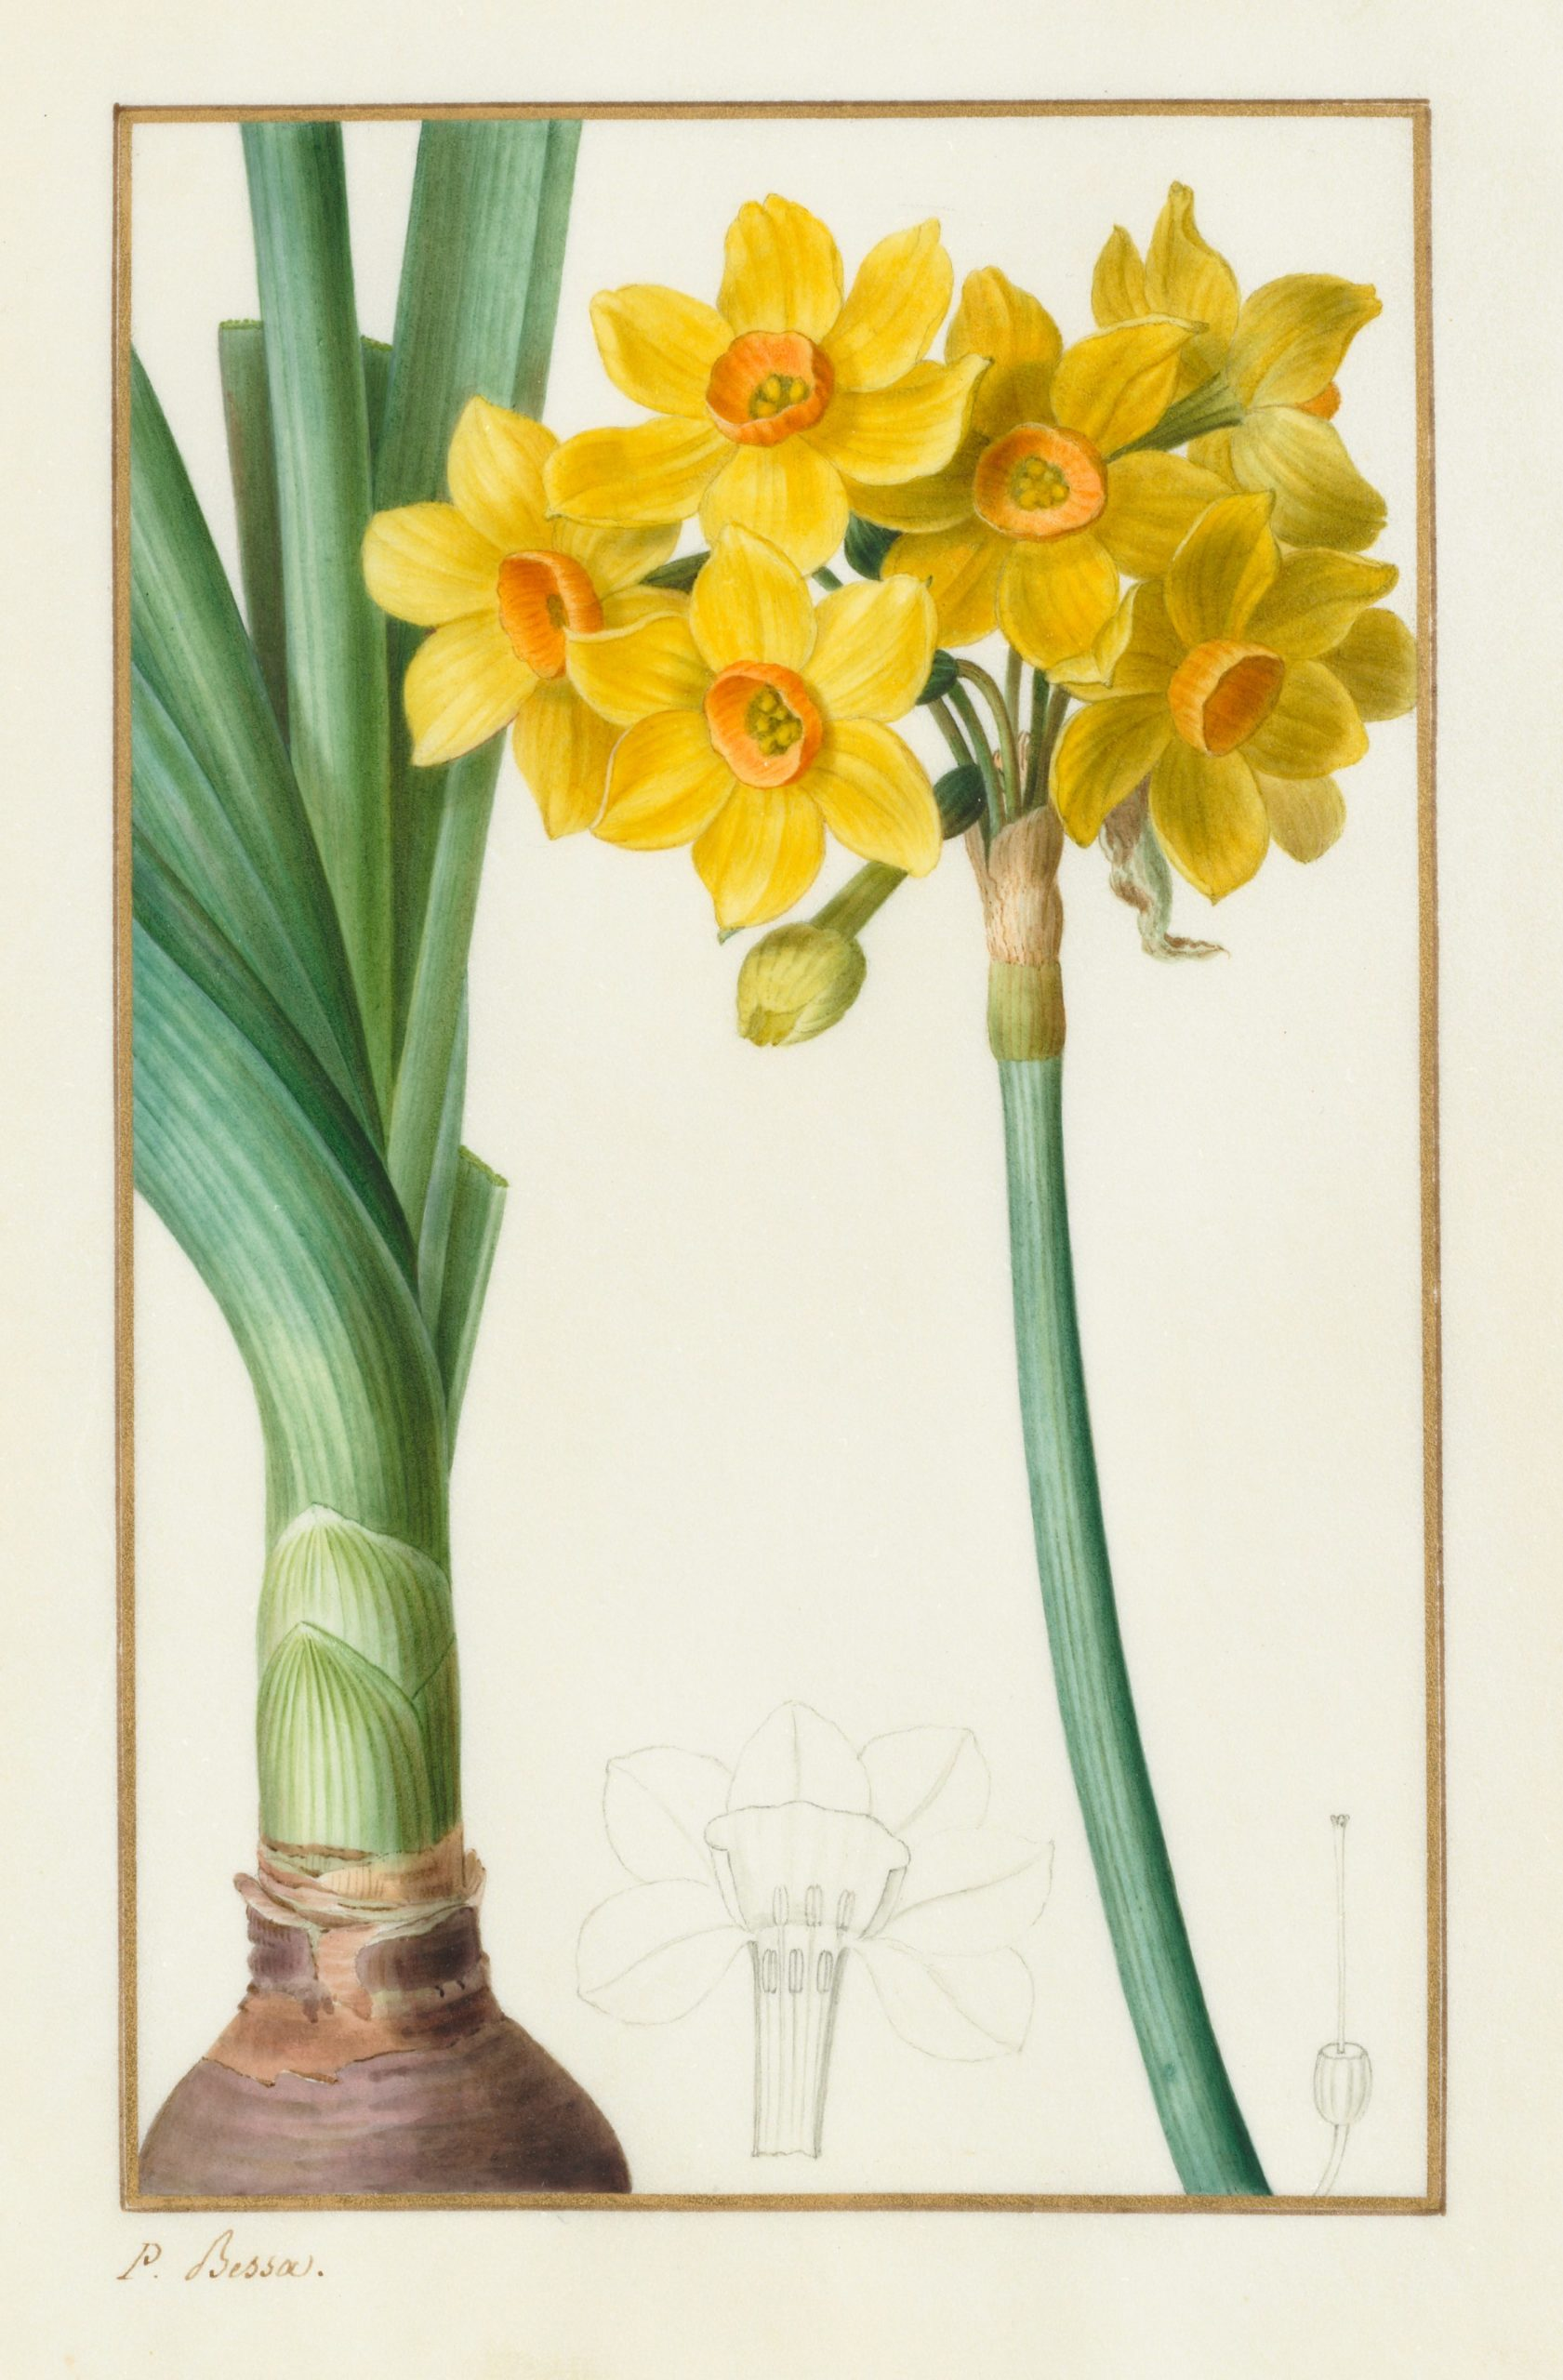 Vintage Botanical Prints - 62 in a series - Polyanthus or Cluster Narcissus (1836) from the Cleveland Museum of Art